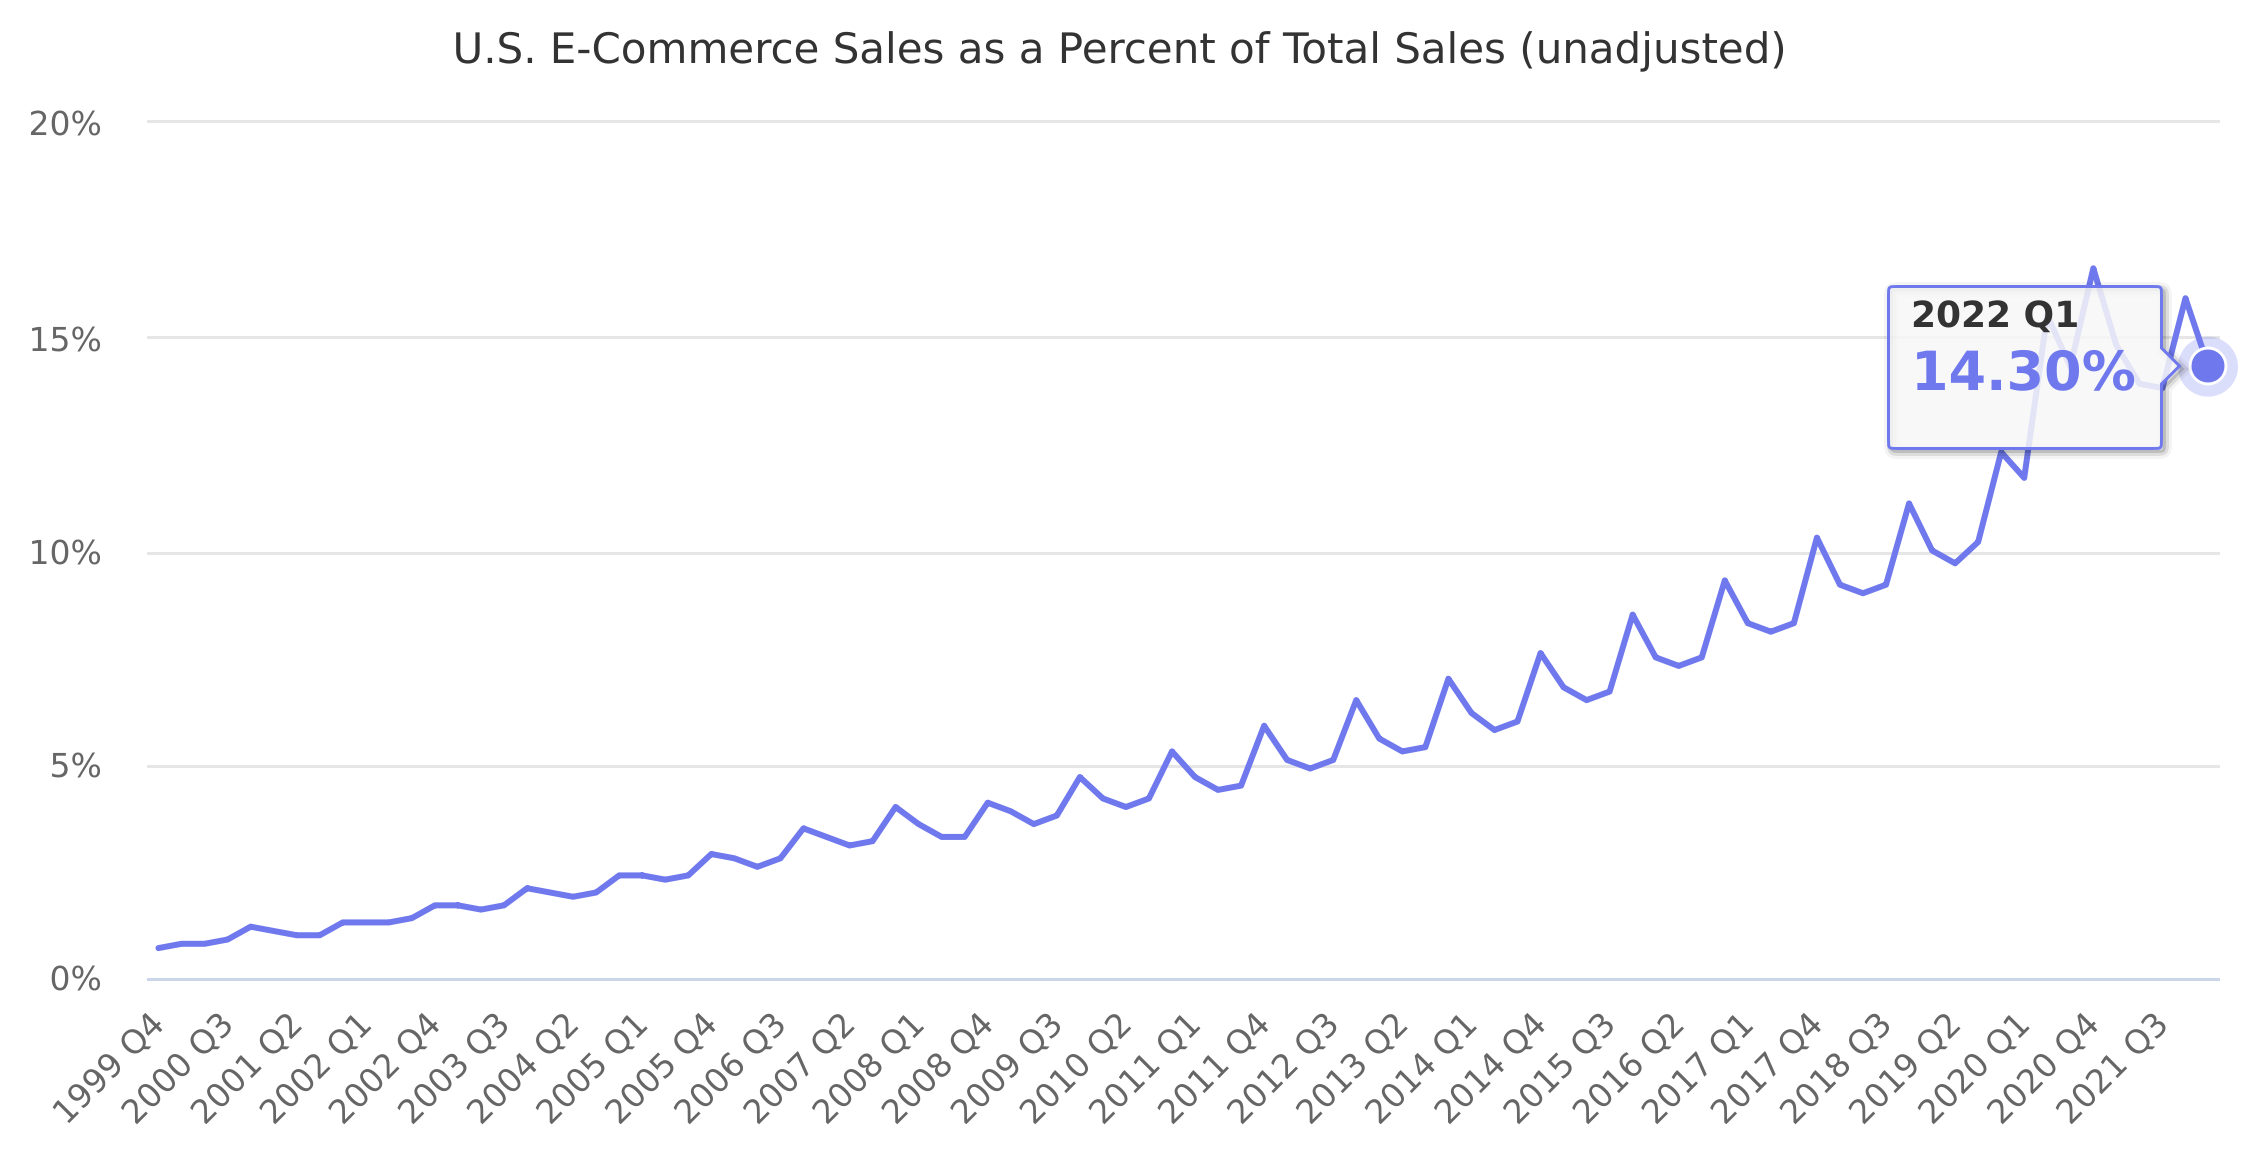 U.S. E-Commerce Sales as a Percent of Total Sales (unadjusted) 1999-2018